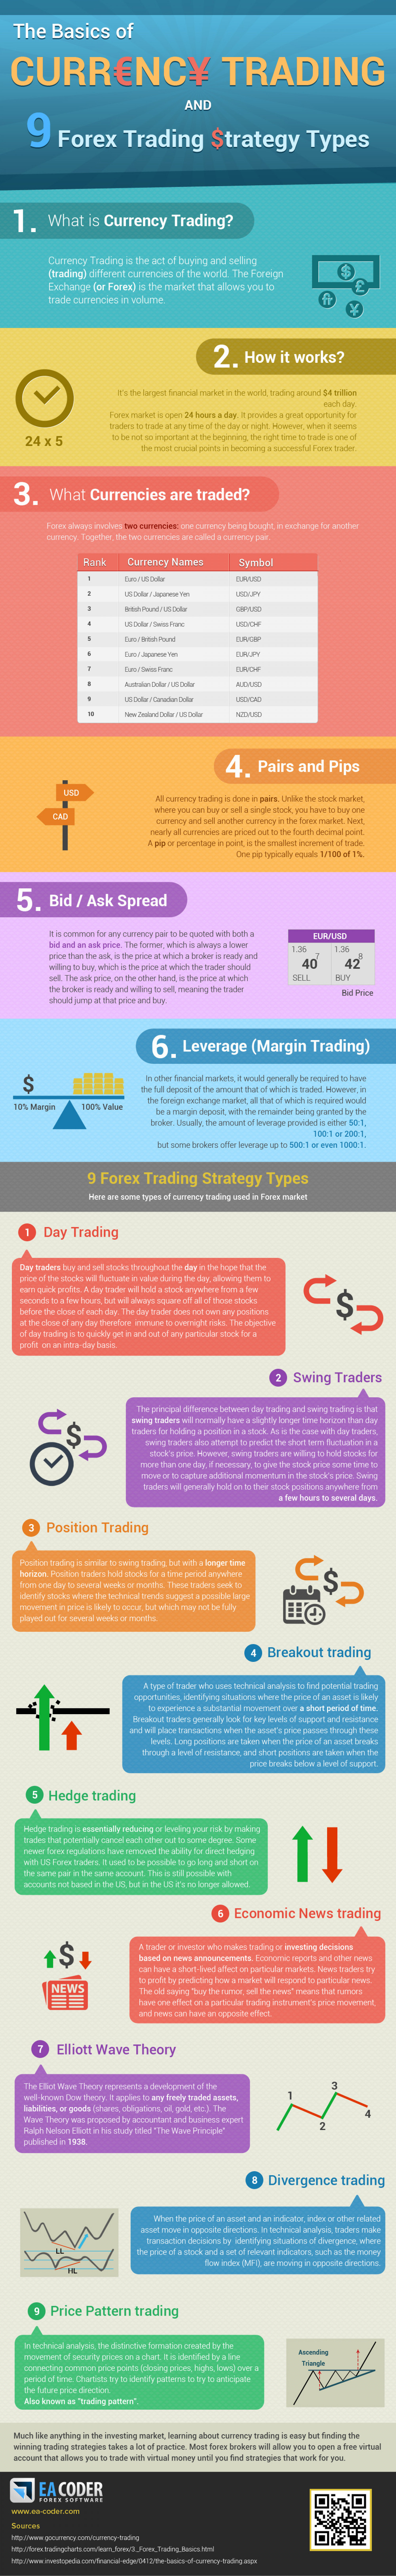 The Basics of Currency Trading and 9 Forex Trading Strategy Types Infographic